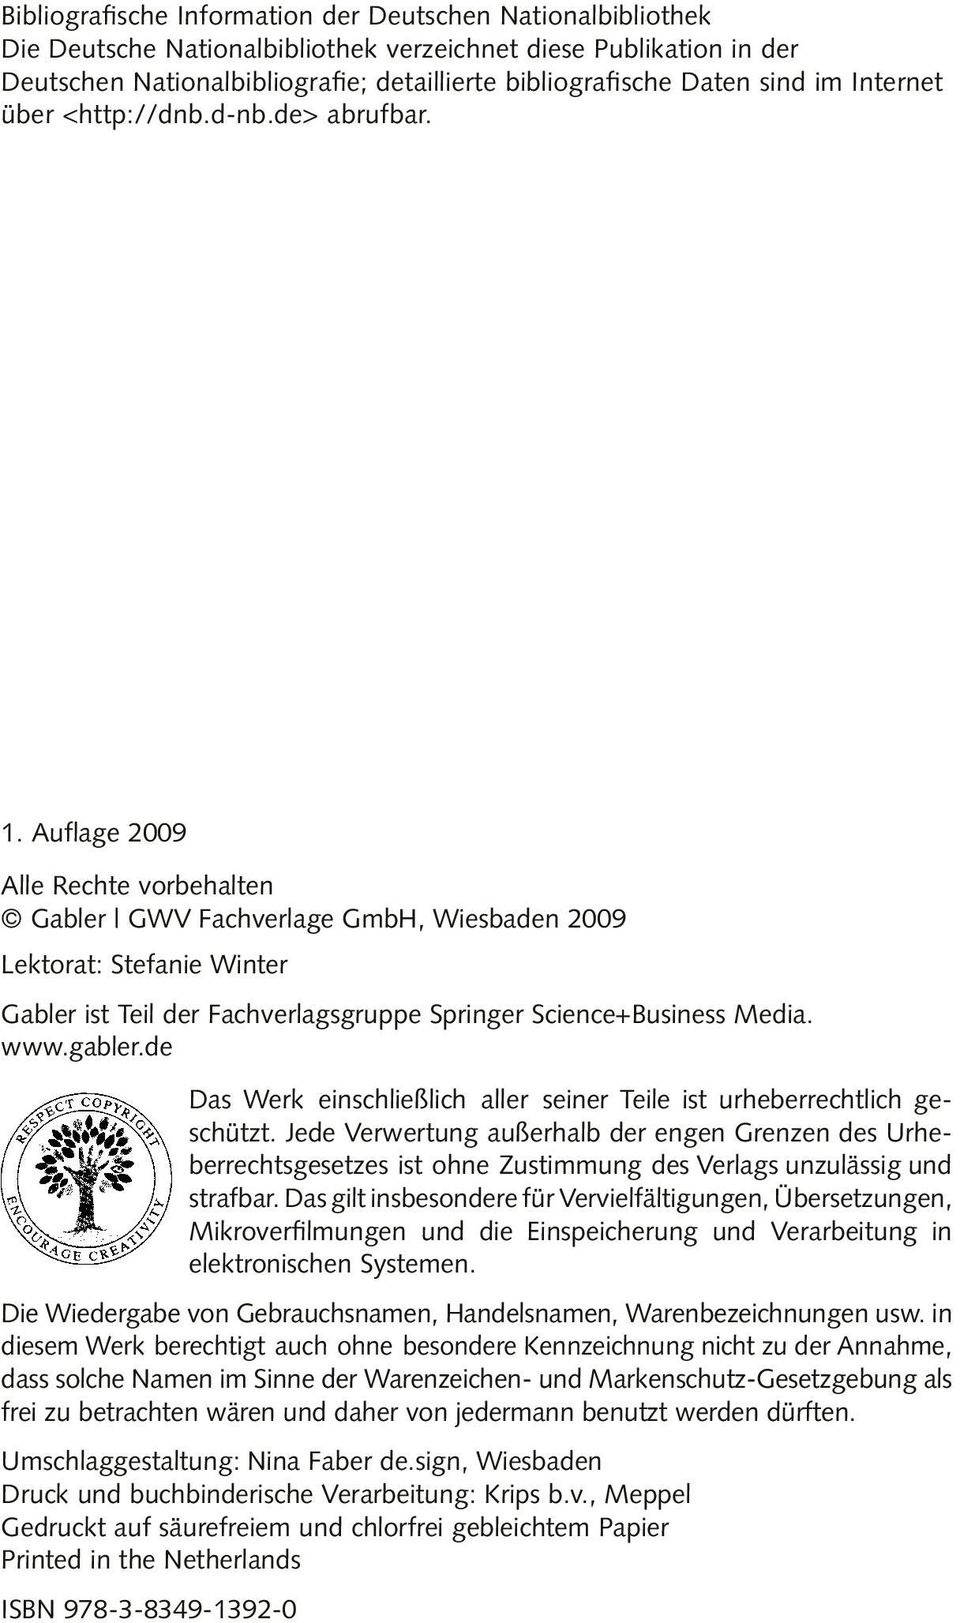 Auflage 2009 Alle Rechte vorbehalten Gabler GWV Fachverlage GmbH, Wiesbaden 2009 Lektorat: Stefanie Winter Gabler ist Teil der Fachverlagsgruppe Springer Science+Business Media. www.gabler.